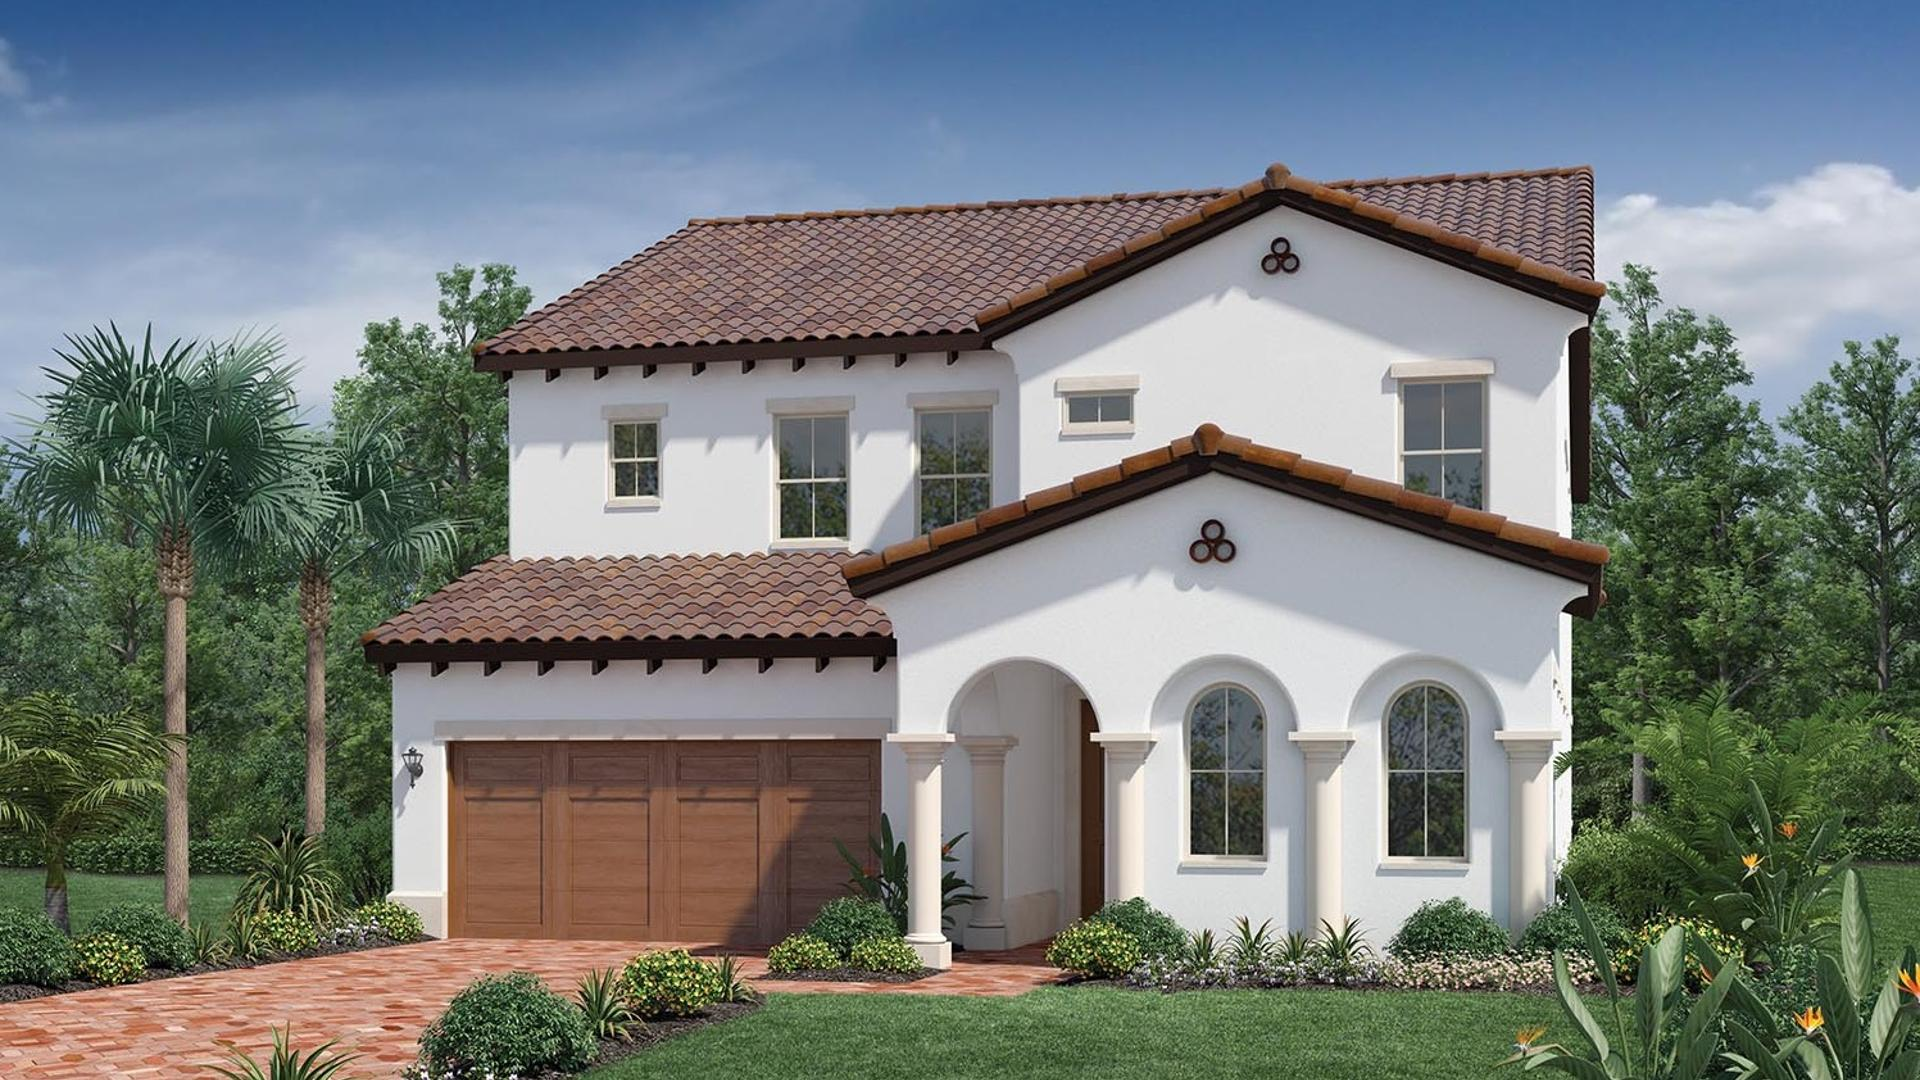 Spanish Colonial front elevation rendering